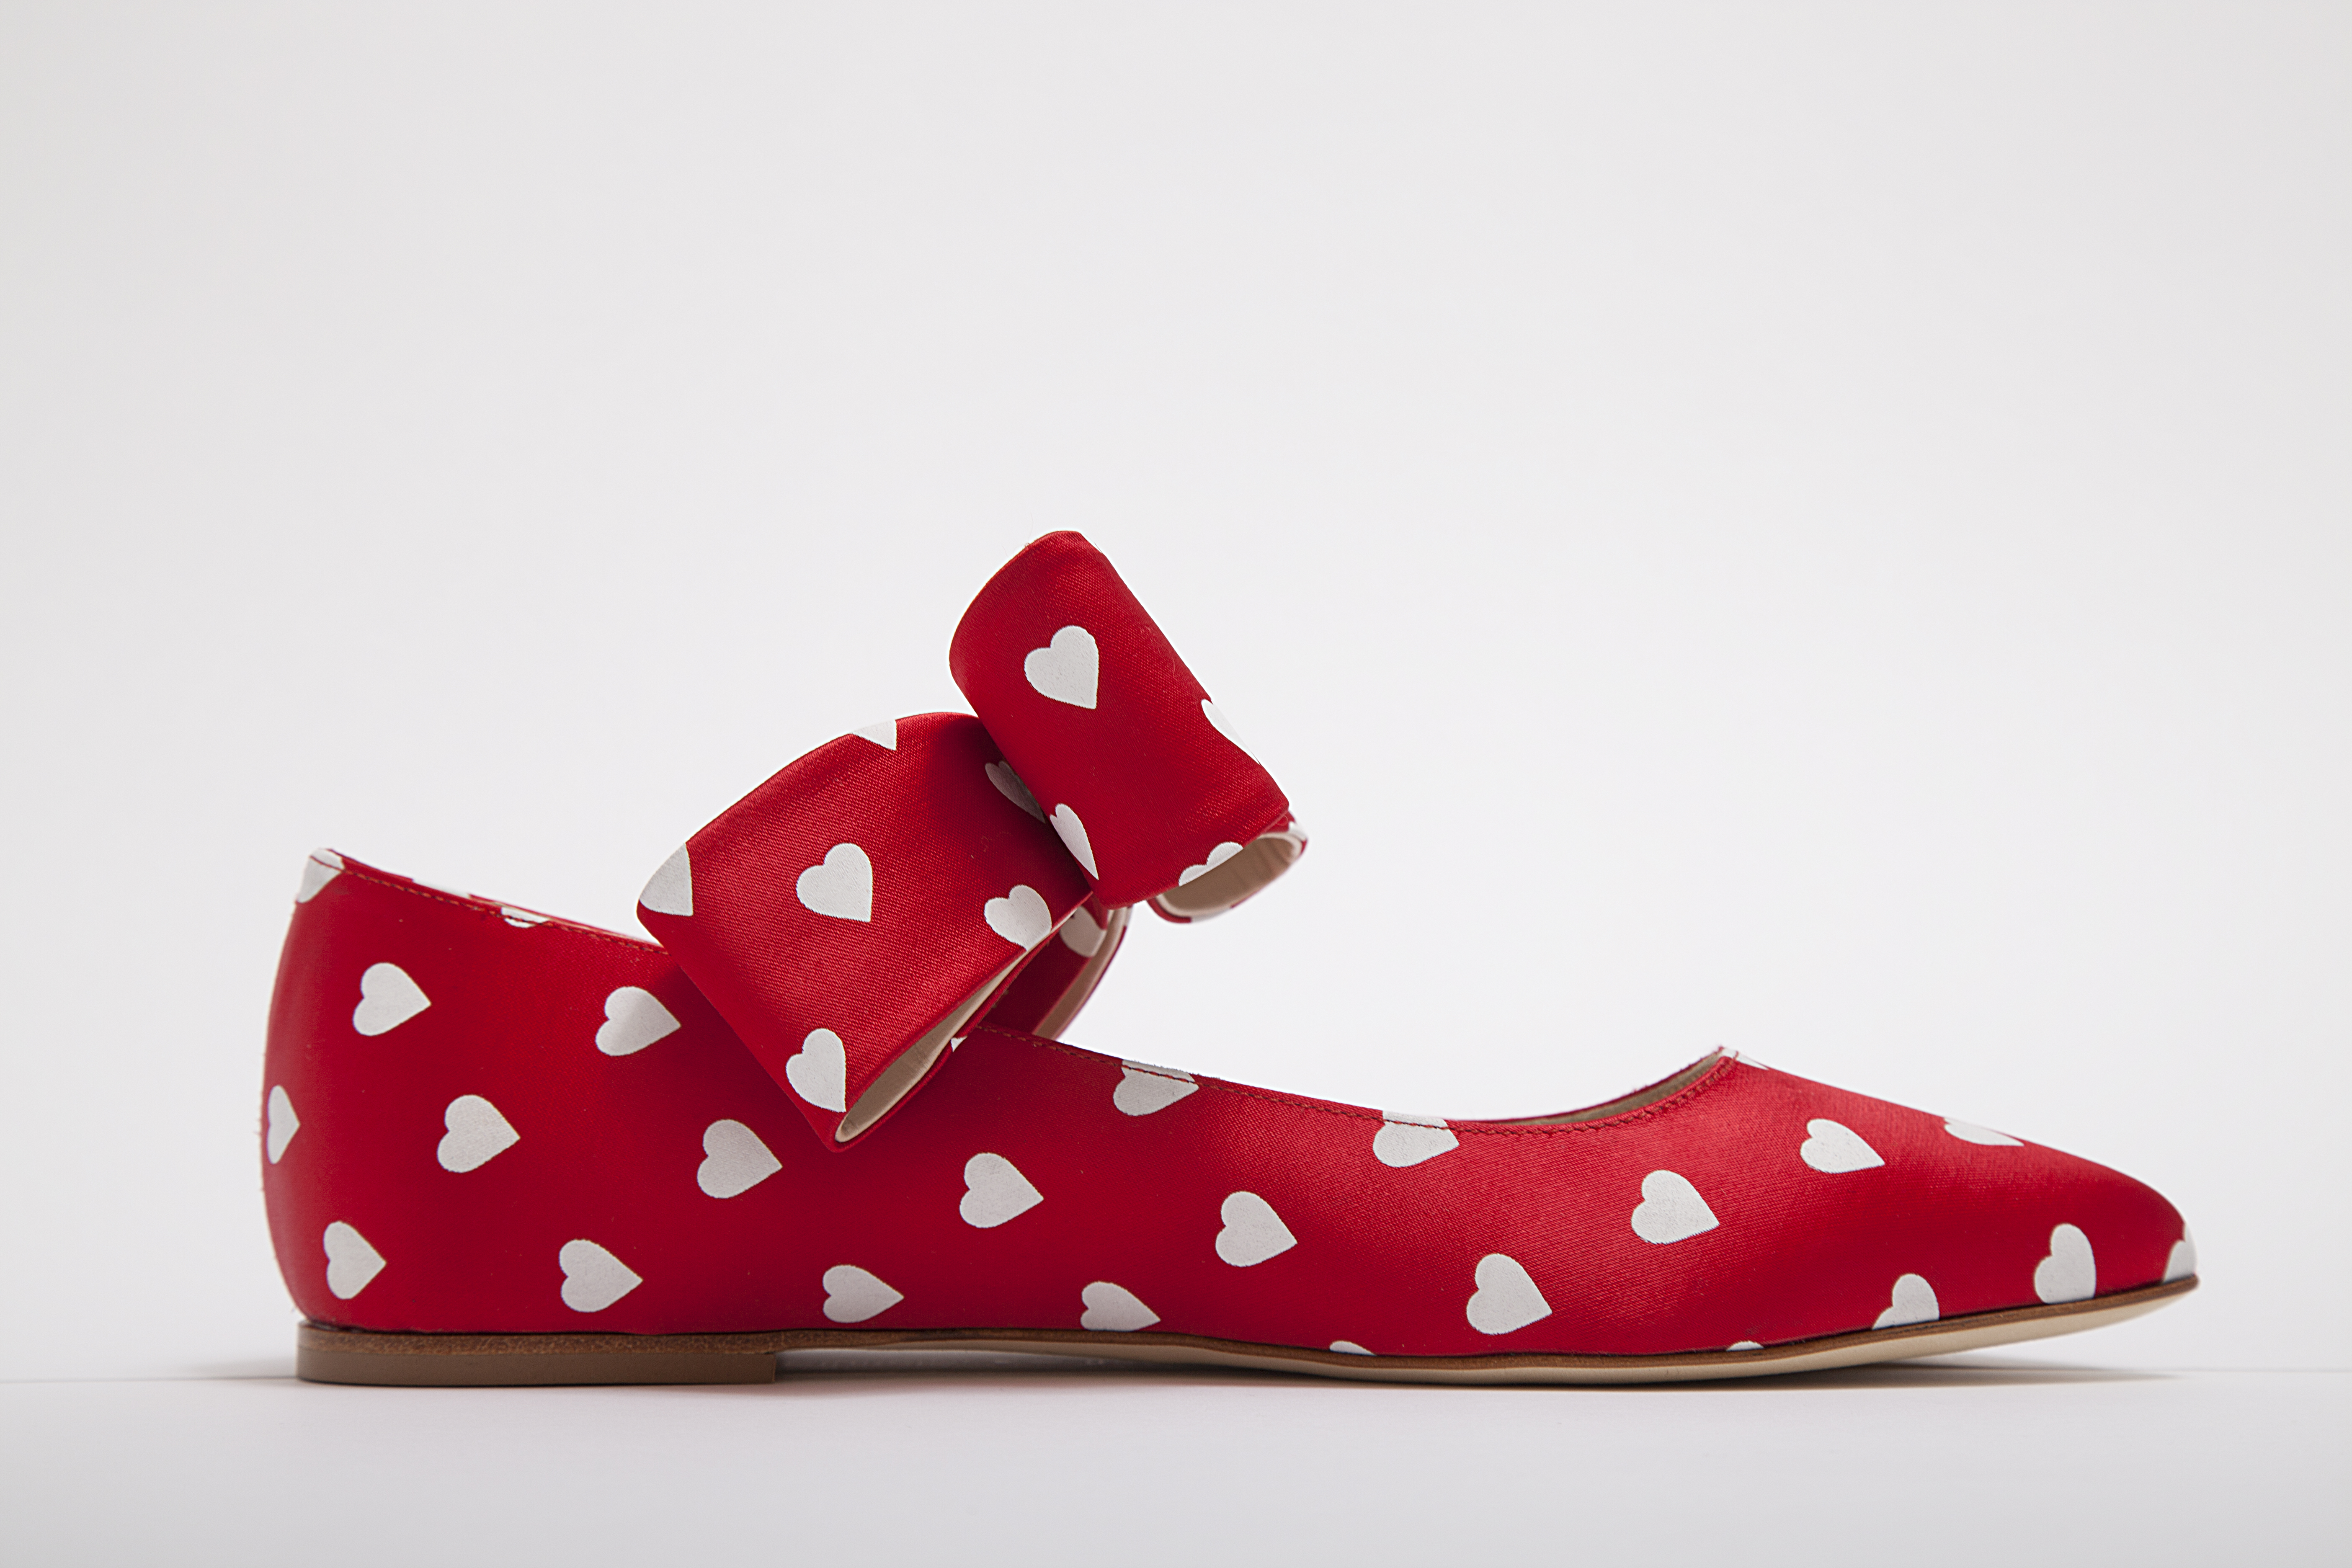 Polly Plumes SS 18 bonnie bow crazy in love red side